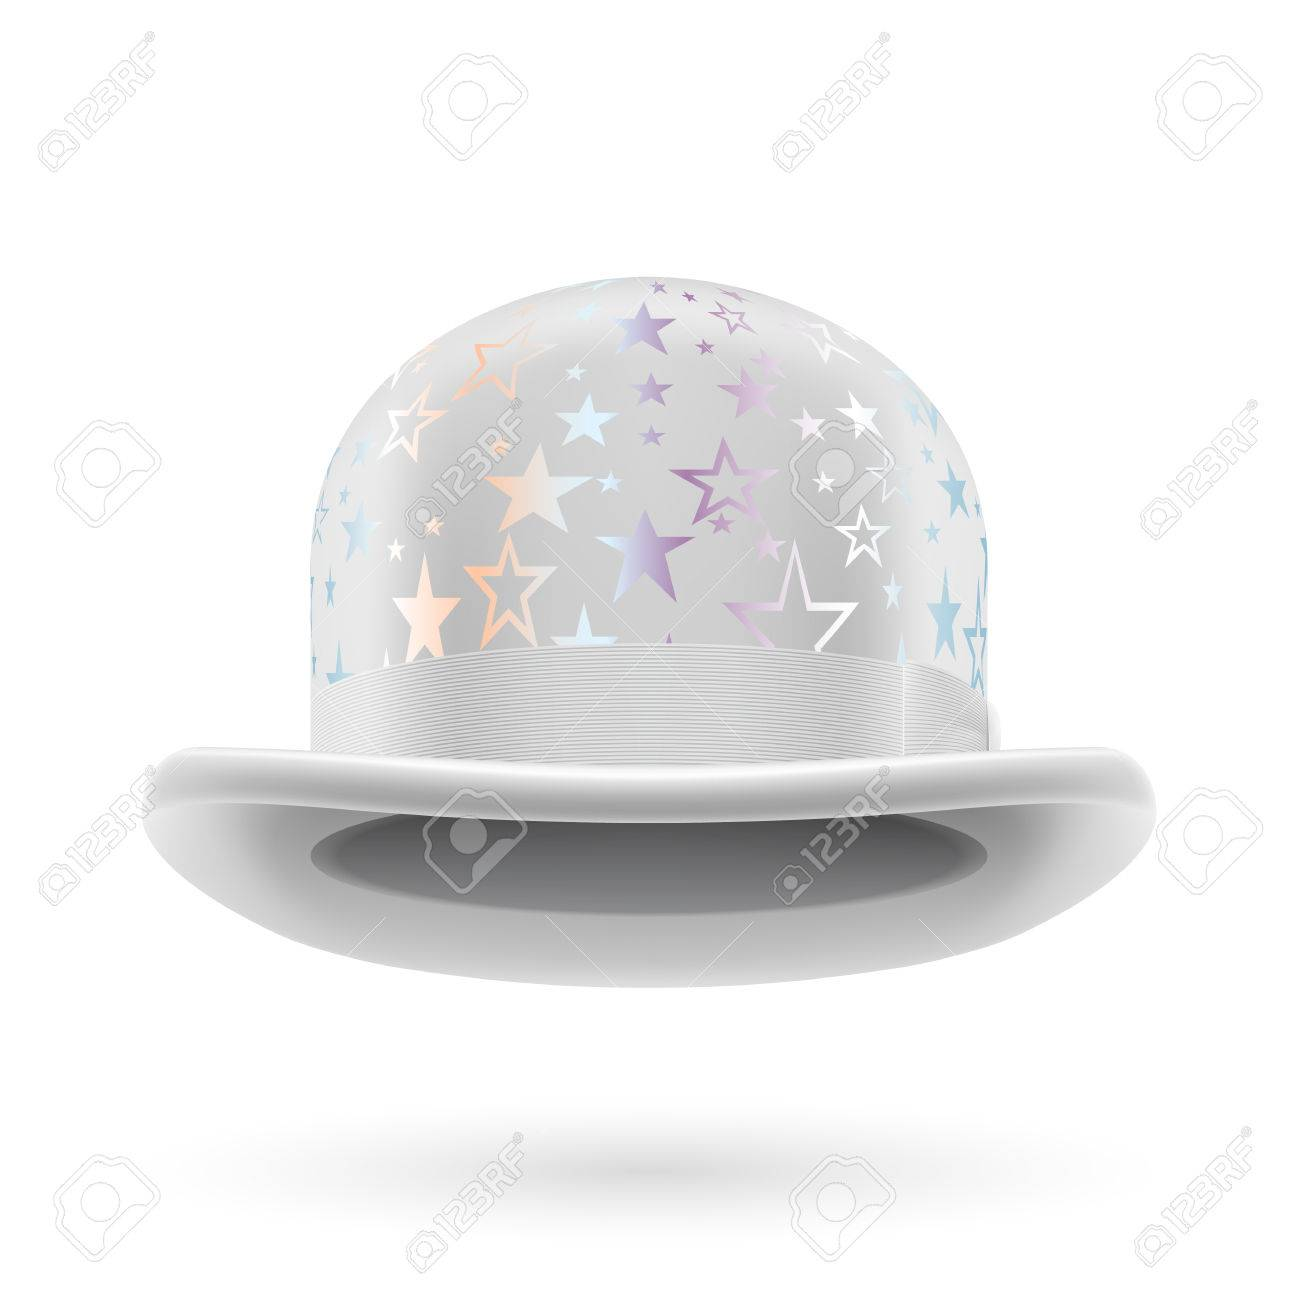 5105c282143d1 White Round Bowler Hat With Silver Glistening Stars. Royalty Free ...